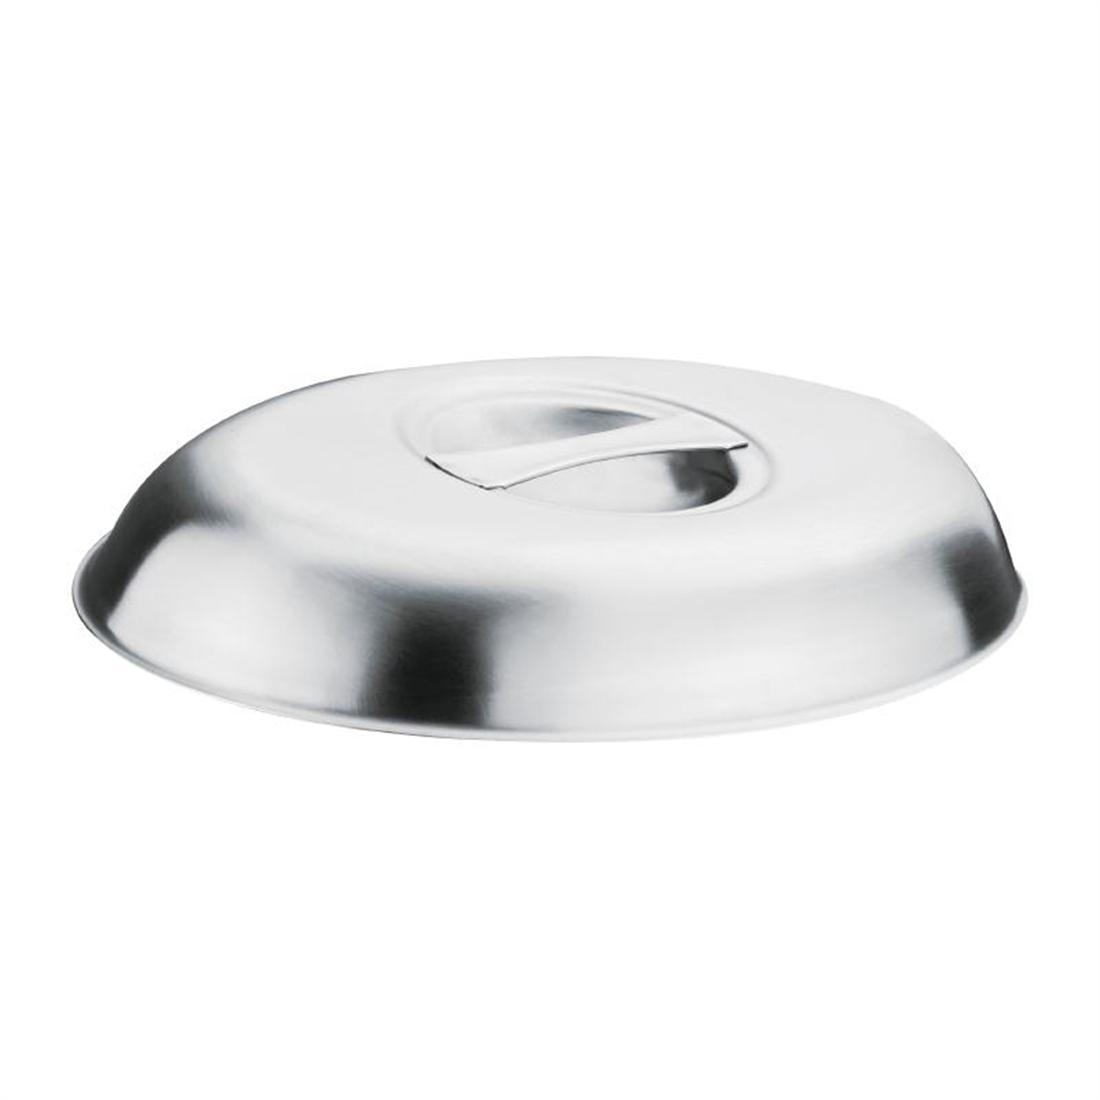 Olympia Oval Vegetable Dish Lid 290 x 200mm